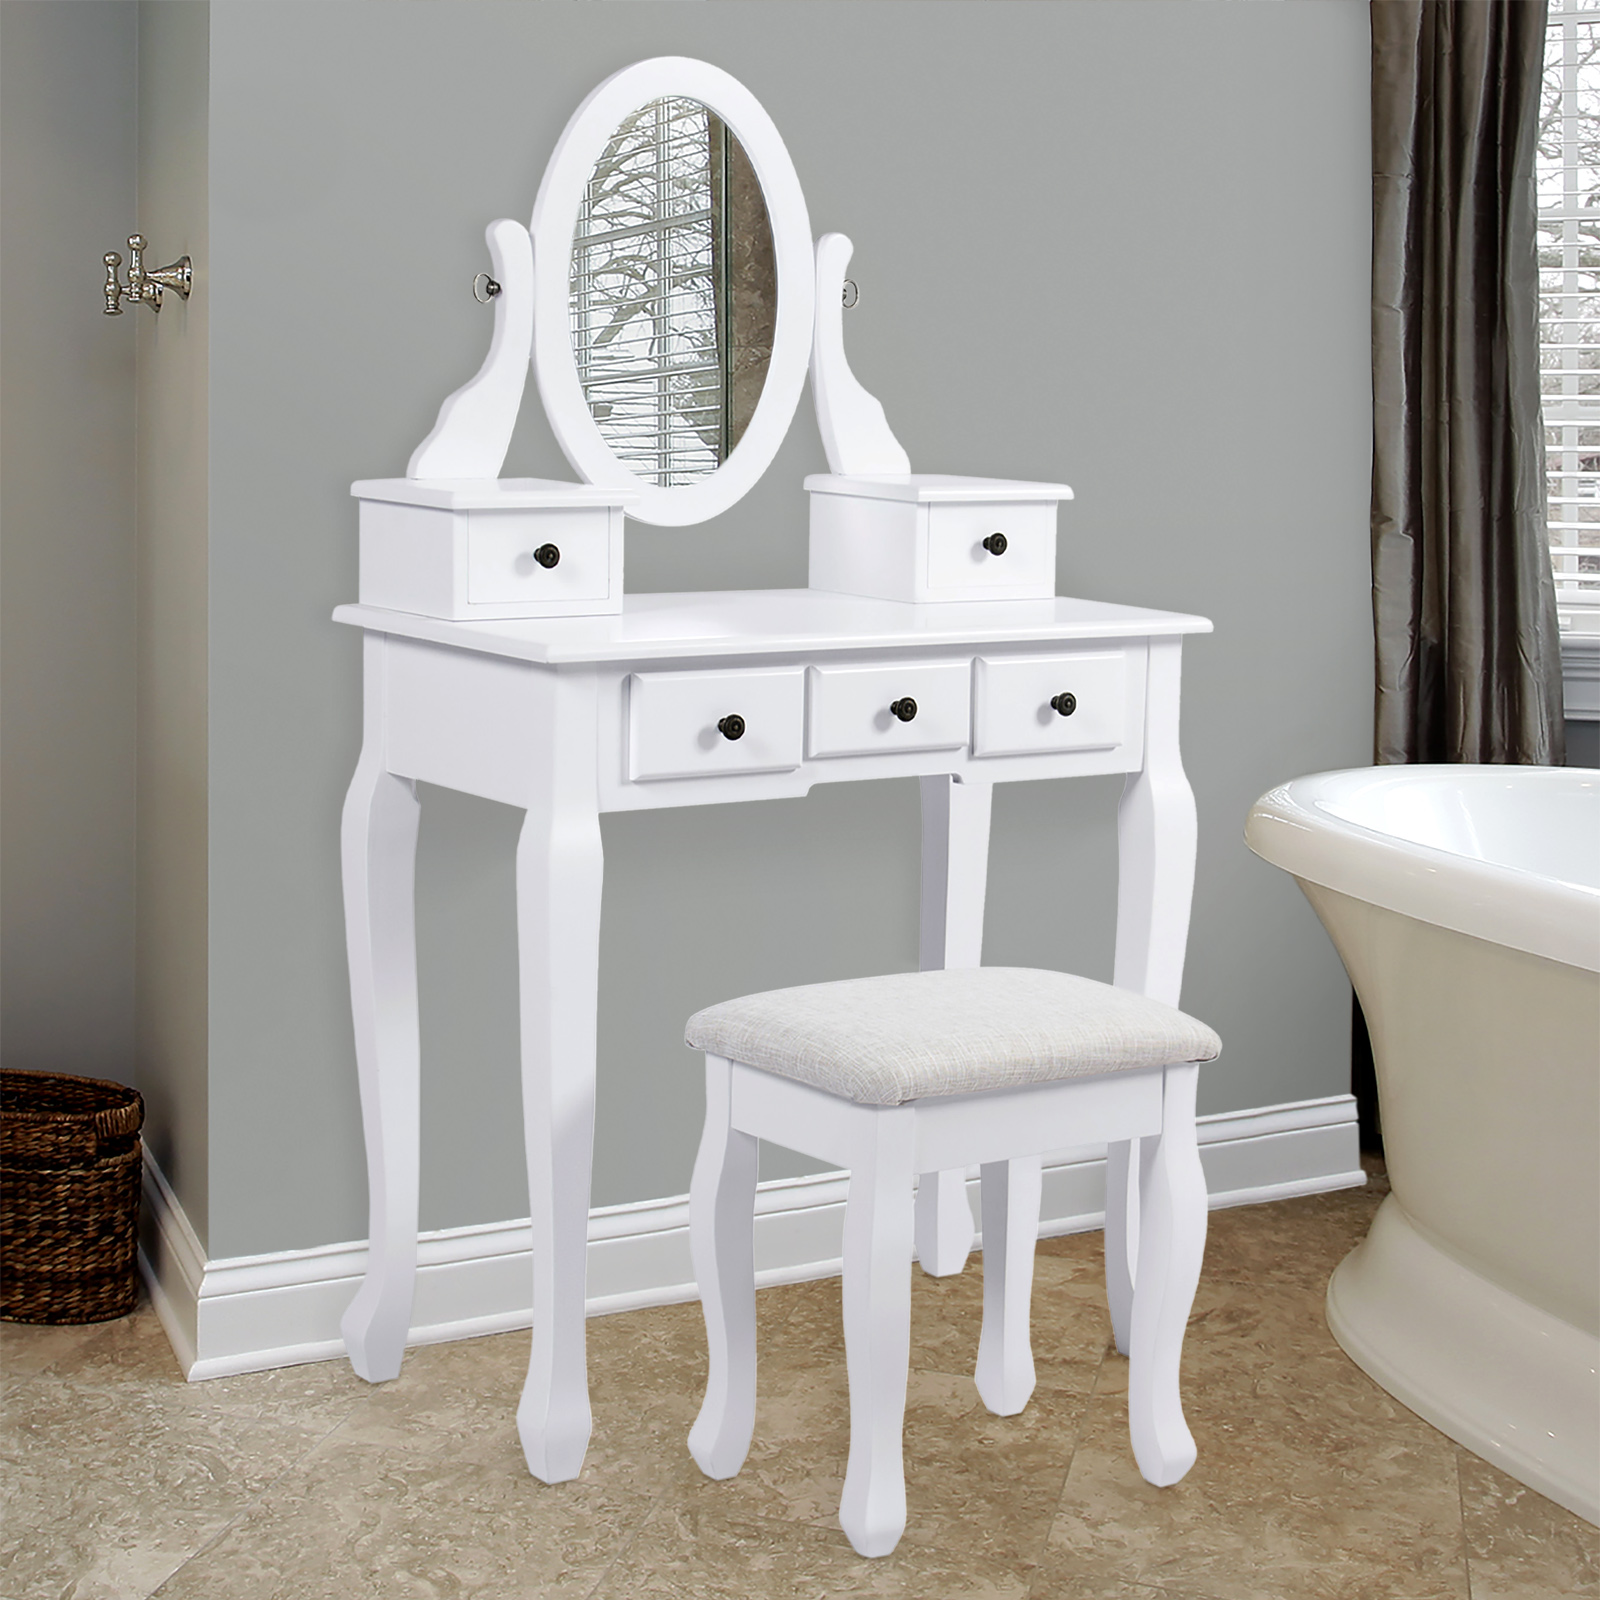 Best Choice Products Vanity Table and Stool Set w  Adjustable Oval Mirror, 5 Drawers, Padded Seat by SKY